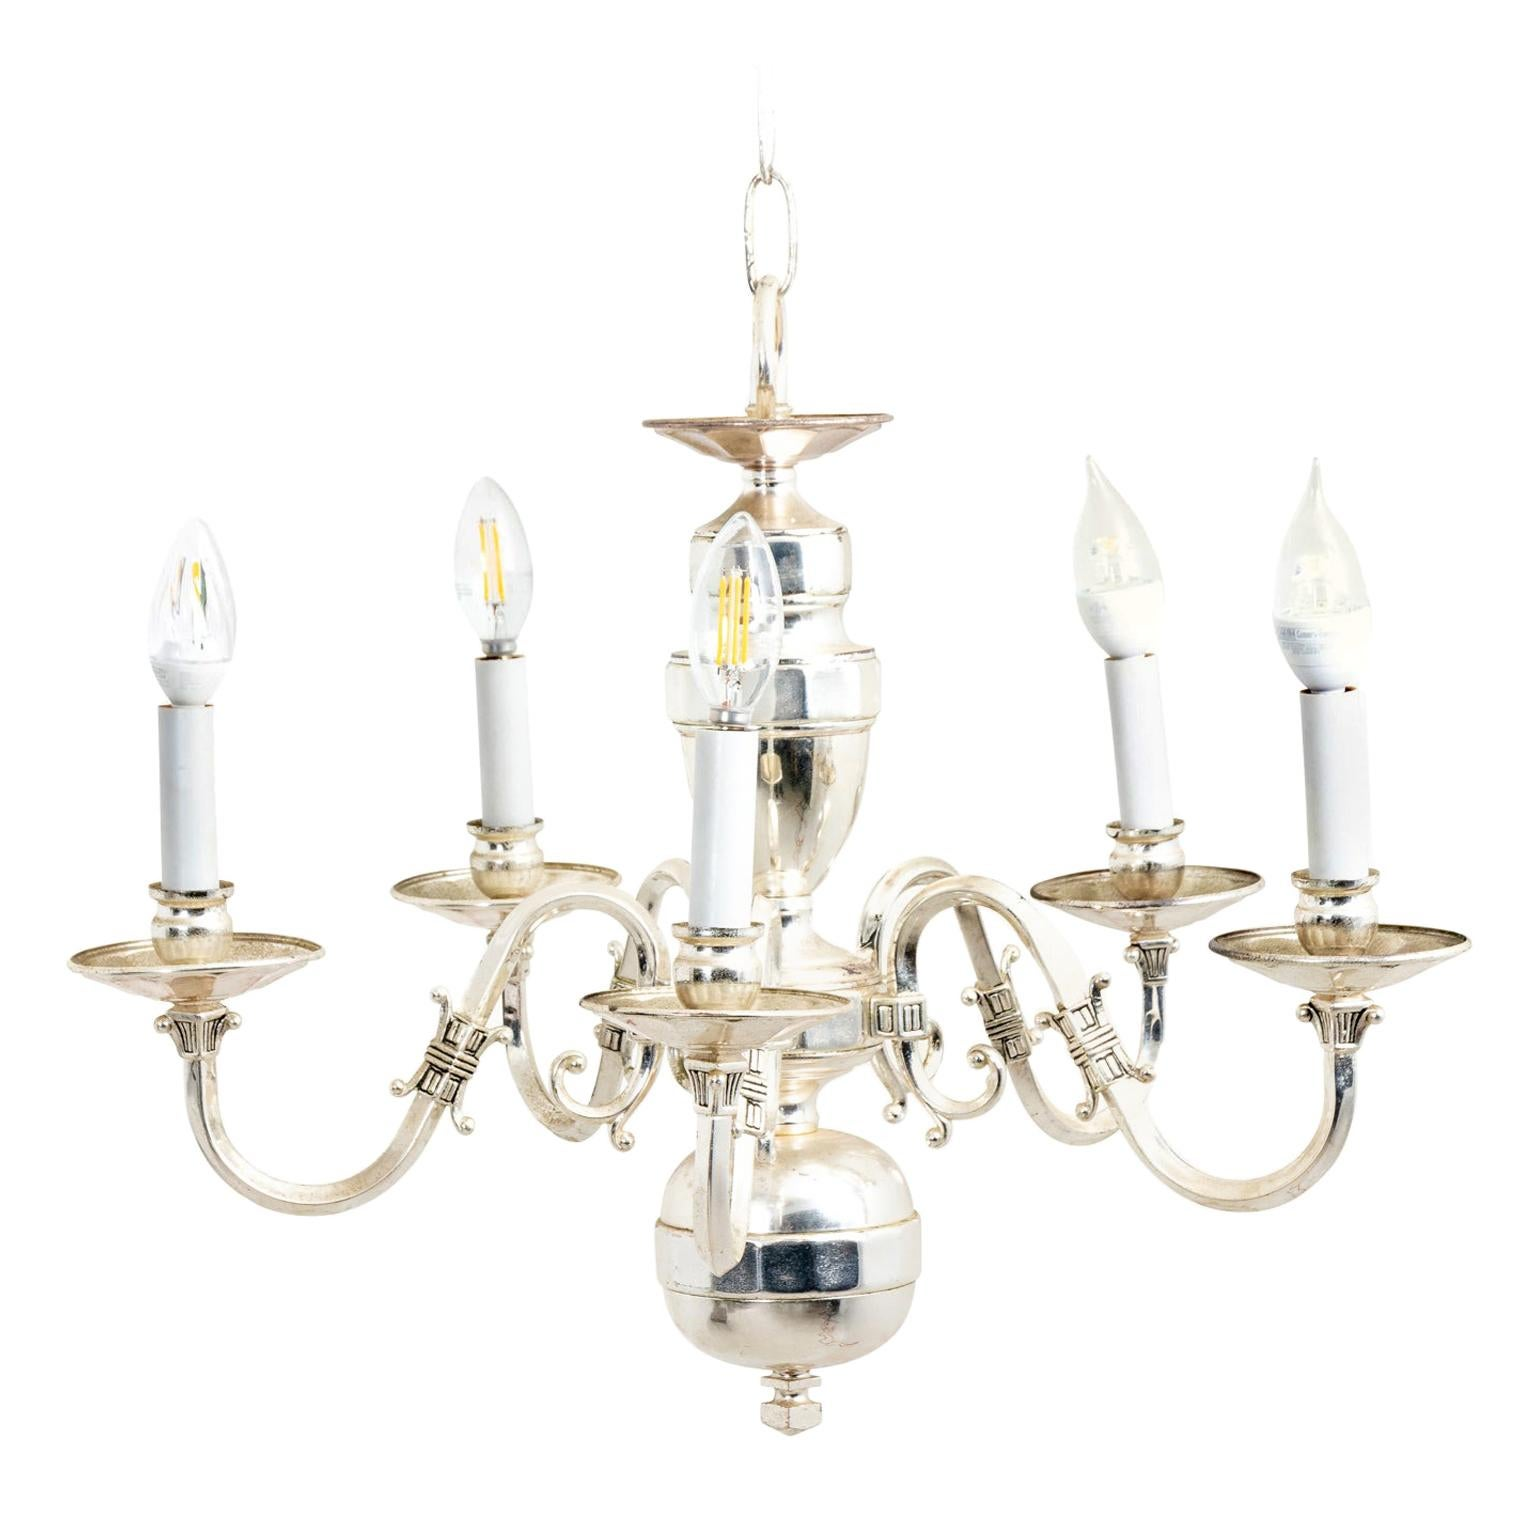 Silver Plated Five-Arm Chandelier